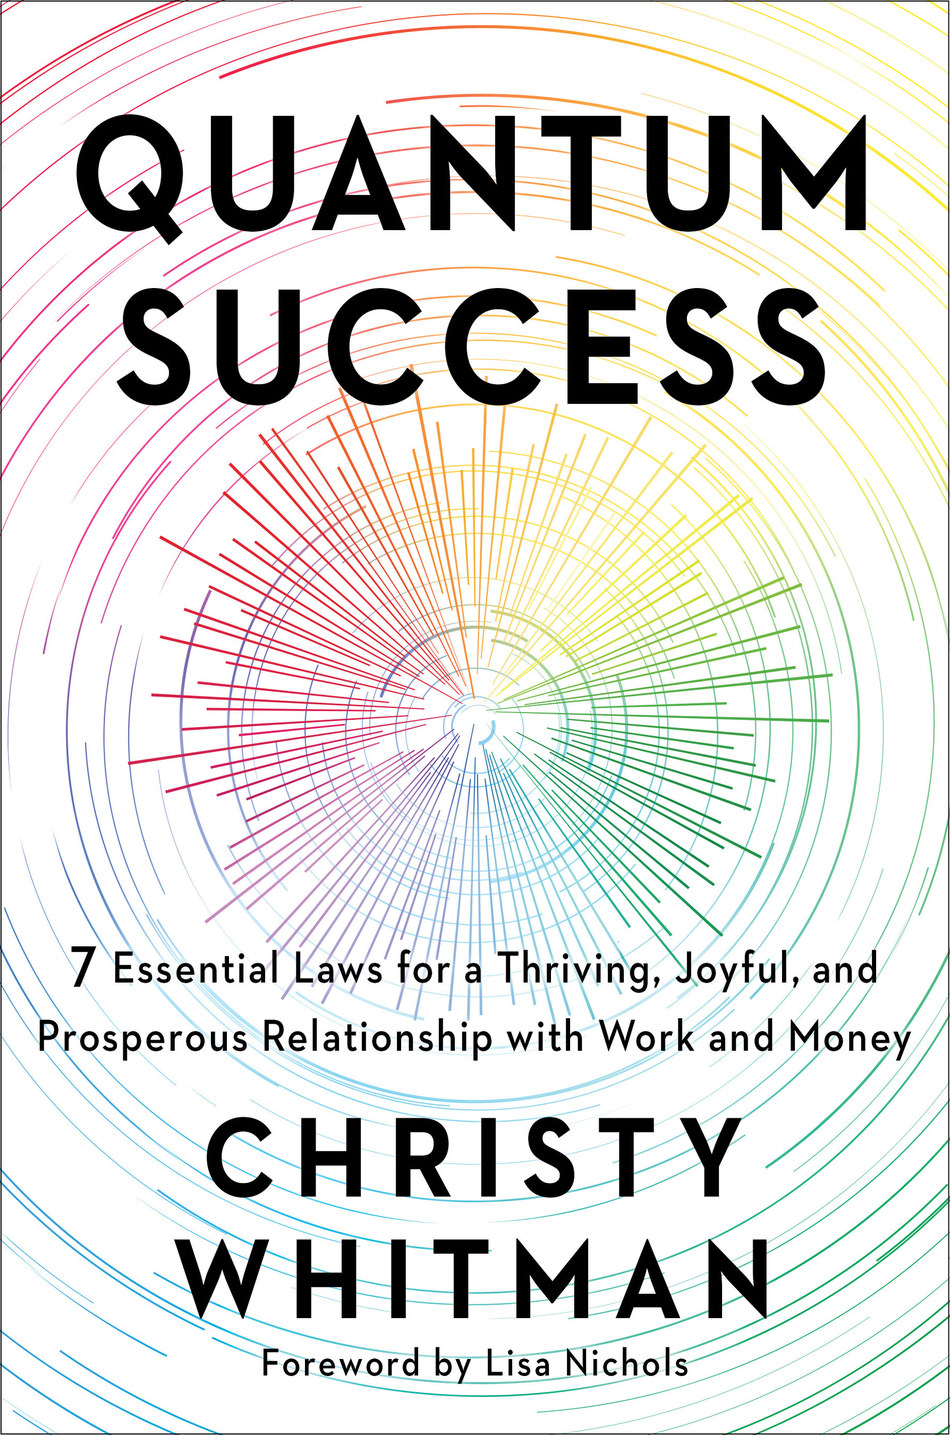 New York Times Bestselling Author Christy Whitman launches her latest book, Quantum Success: 7 Essential Laws for a Thriving, Joyful & Prosperous Relationship with Work and Money, published by Atria/Enliven.  http://www.QuantumSuccessBook.com Whether your vision of an ideal career is starting your own business, rising to a different position within your current company, or landing your very first job, Quantum Success will help you make the prosperity and fulfillment of your dreams a reality.